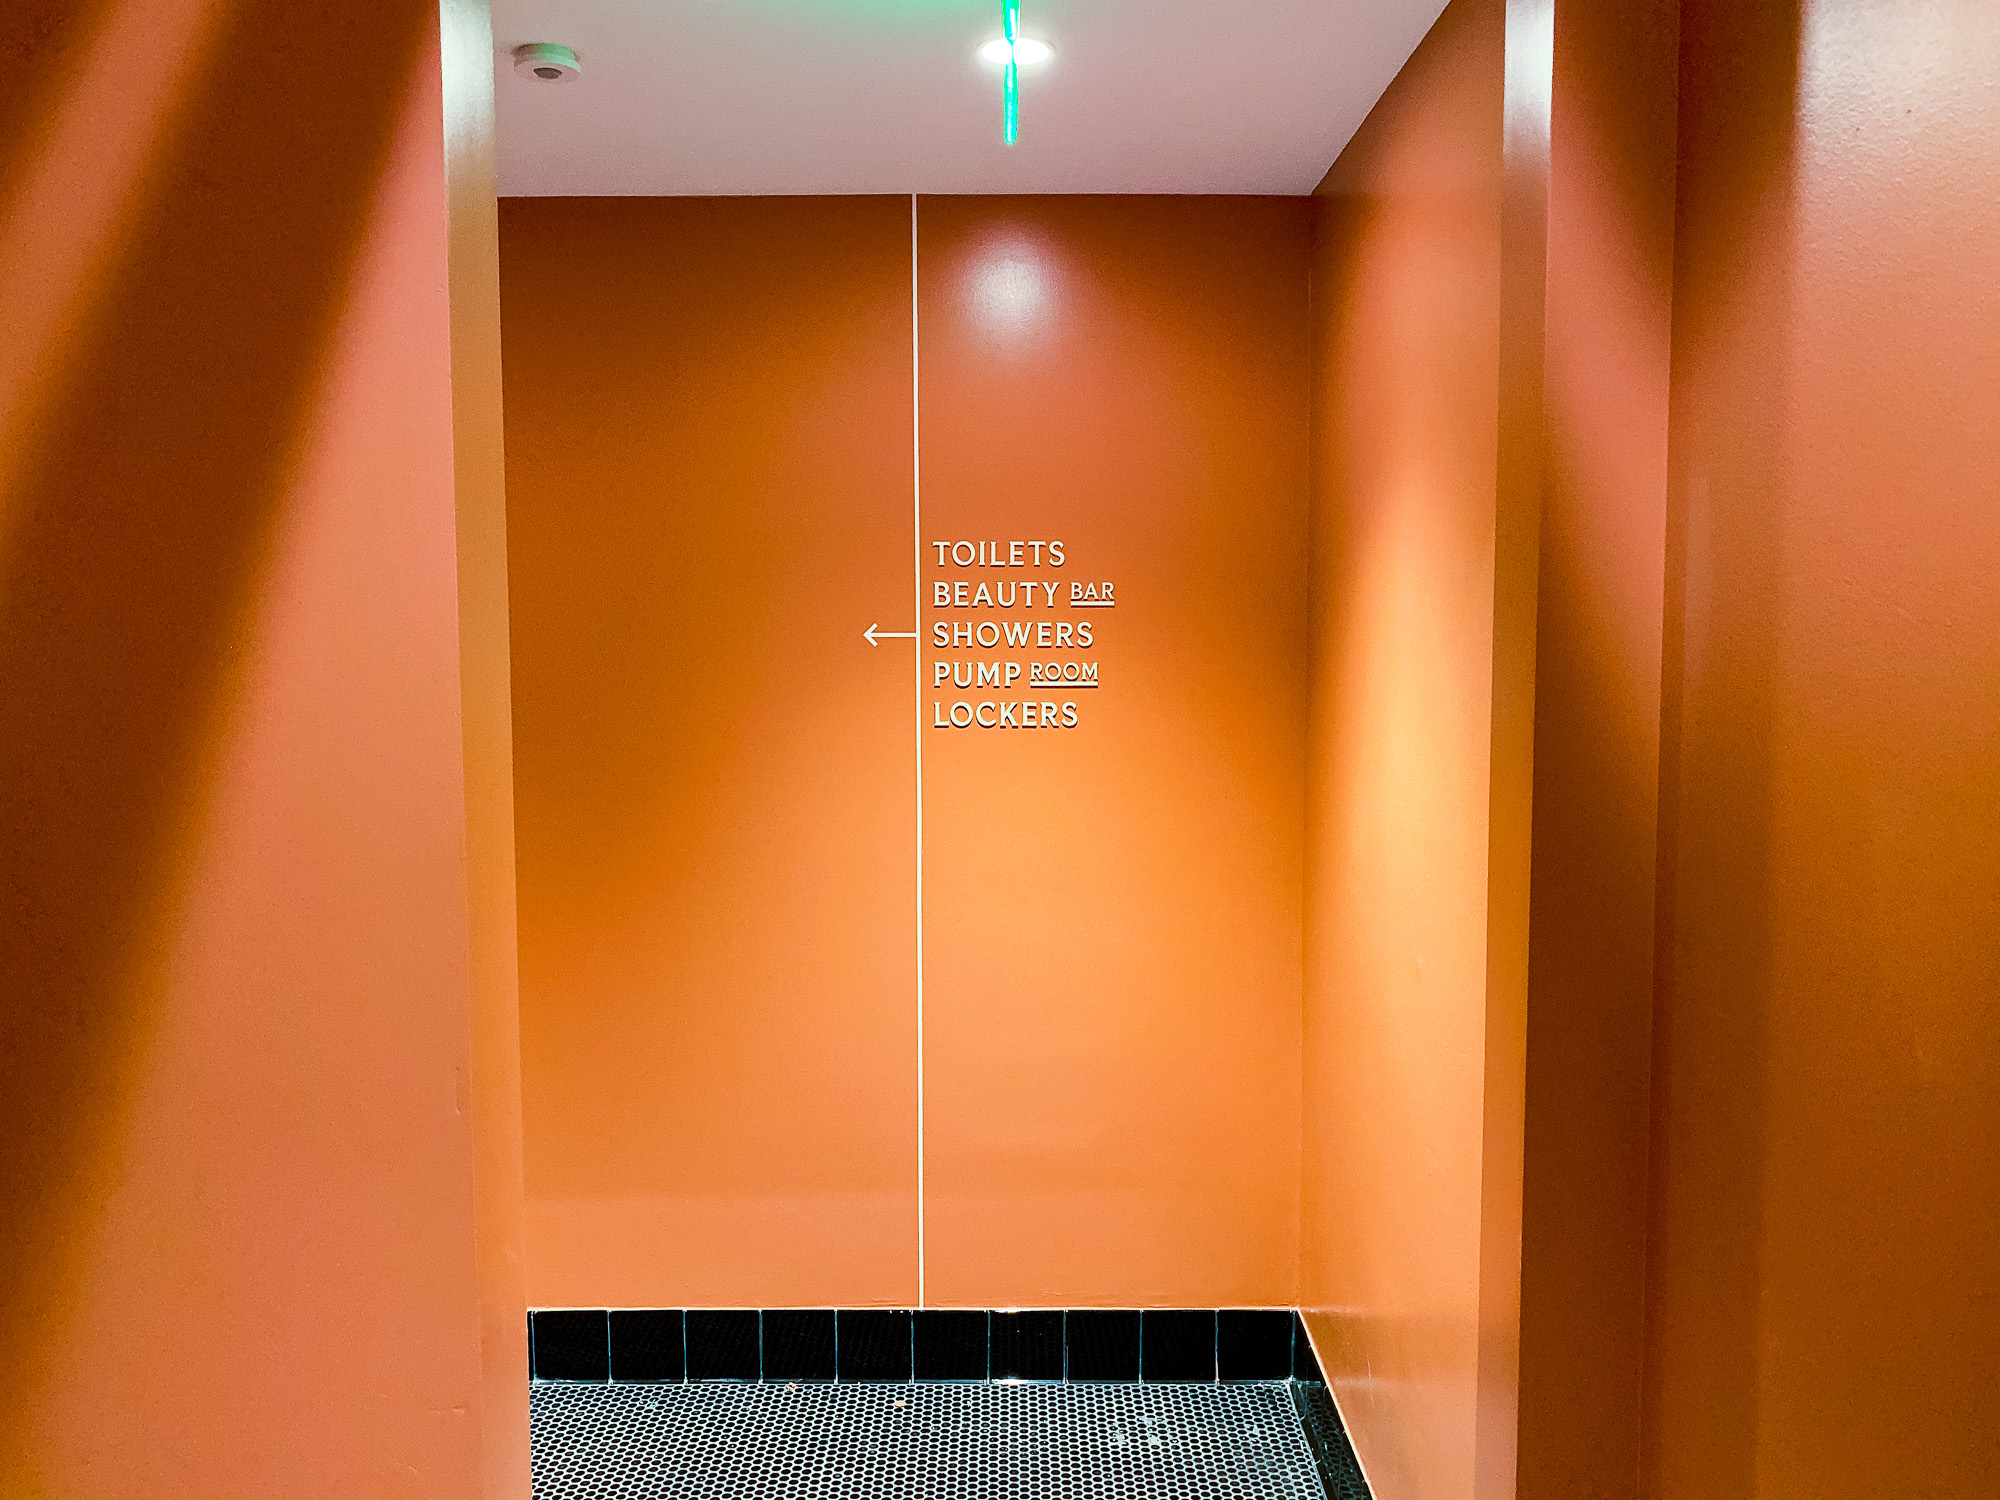 Cream colored, typographic wayfinding sign on orange wall for The Wing, a co-working space in San Francisco.